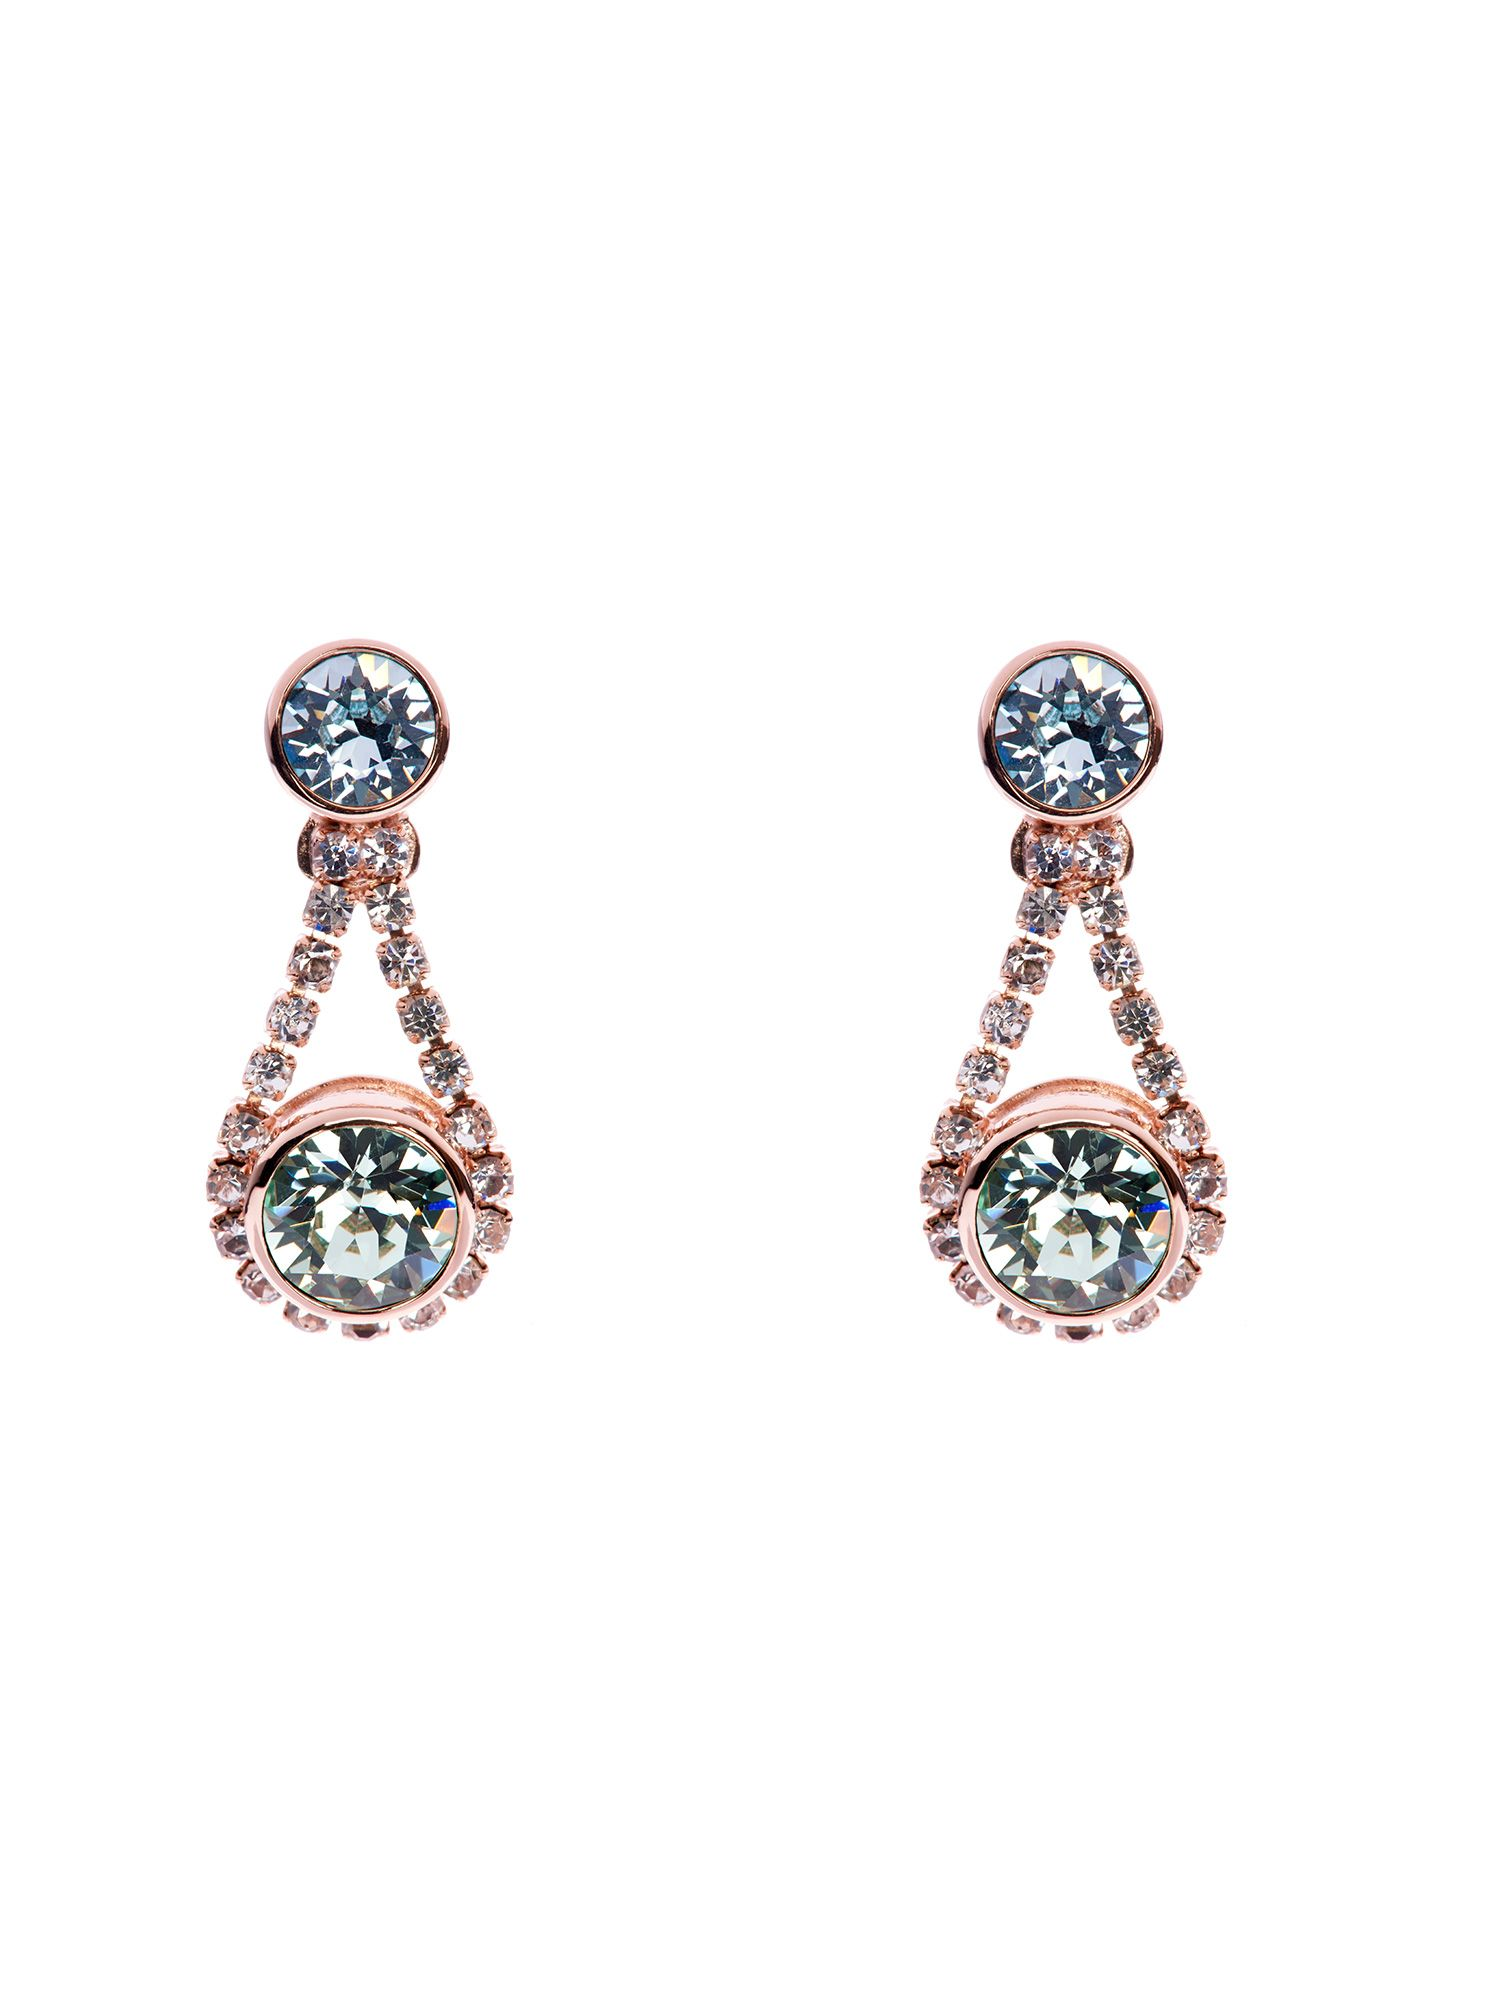 Stormm crystal chain drop earrings